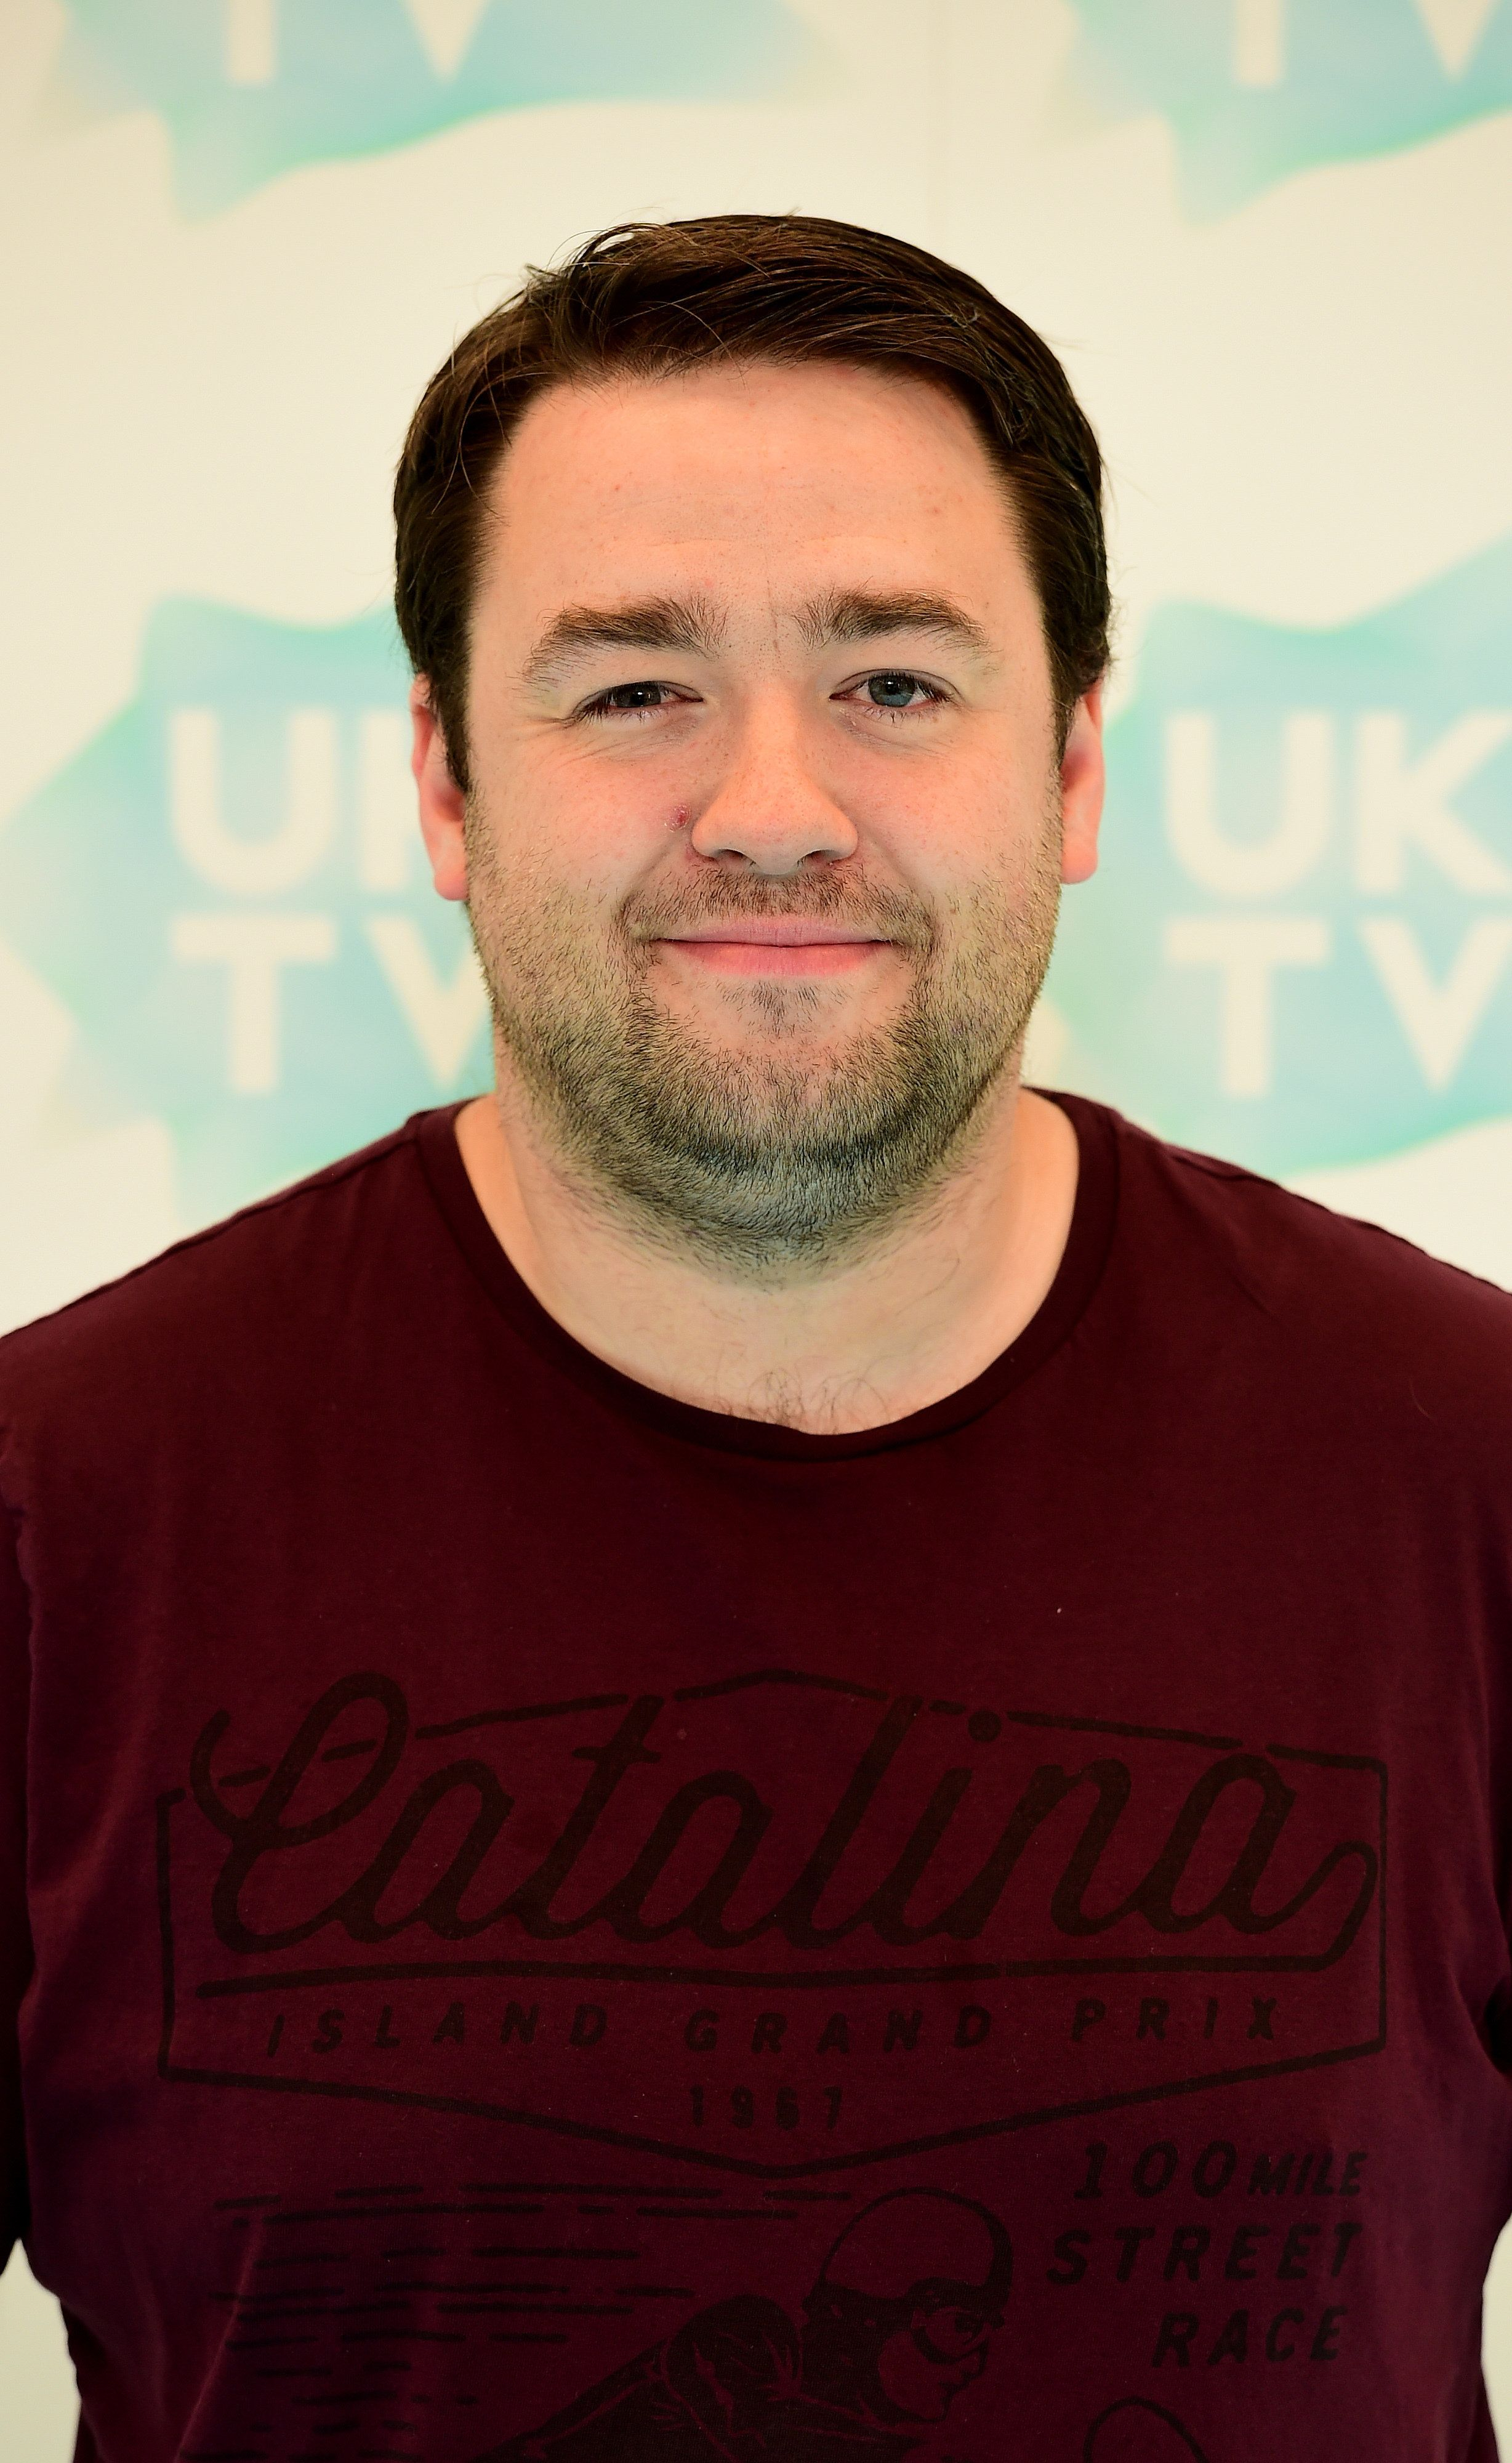 Jason Manford Signed Up To Front BBC's Rival To 'The Great British Bake